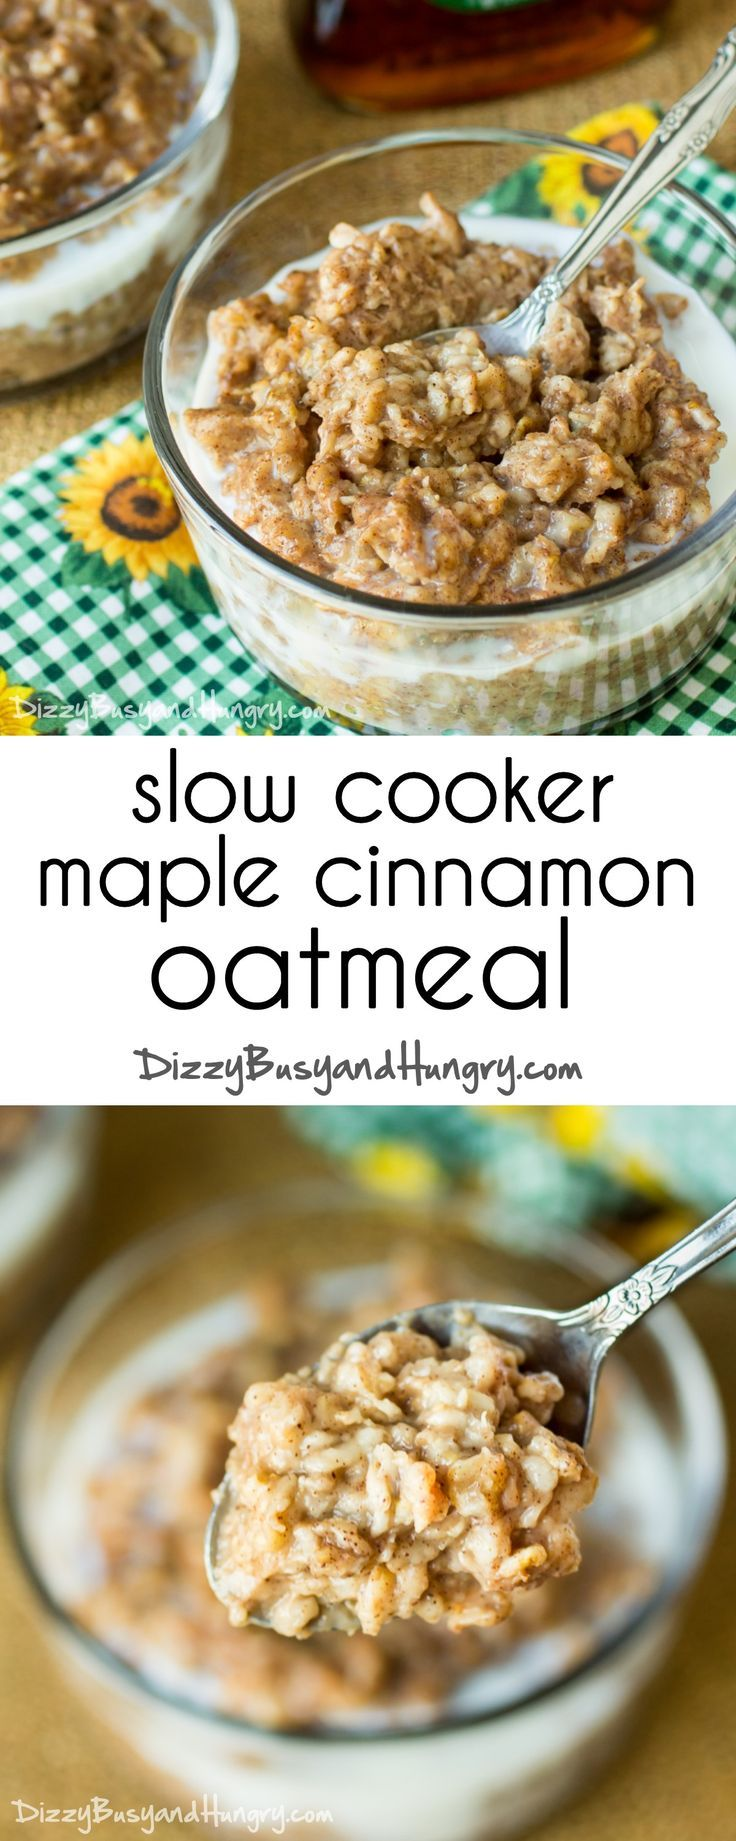 Slow Cooker Cinnamon Maple Oatmeal | Make this oatmeal ahead of time and store in single-serve containers for a quick, hearty breakfast!: